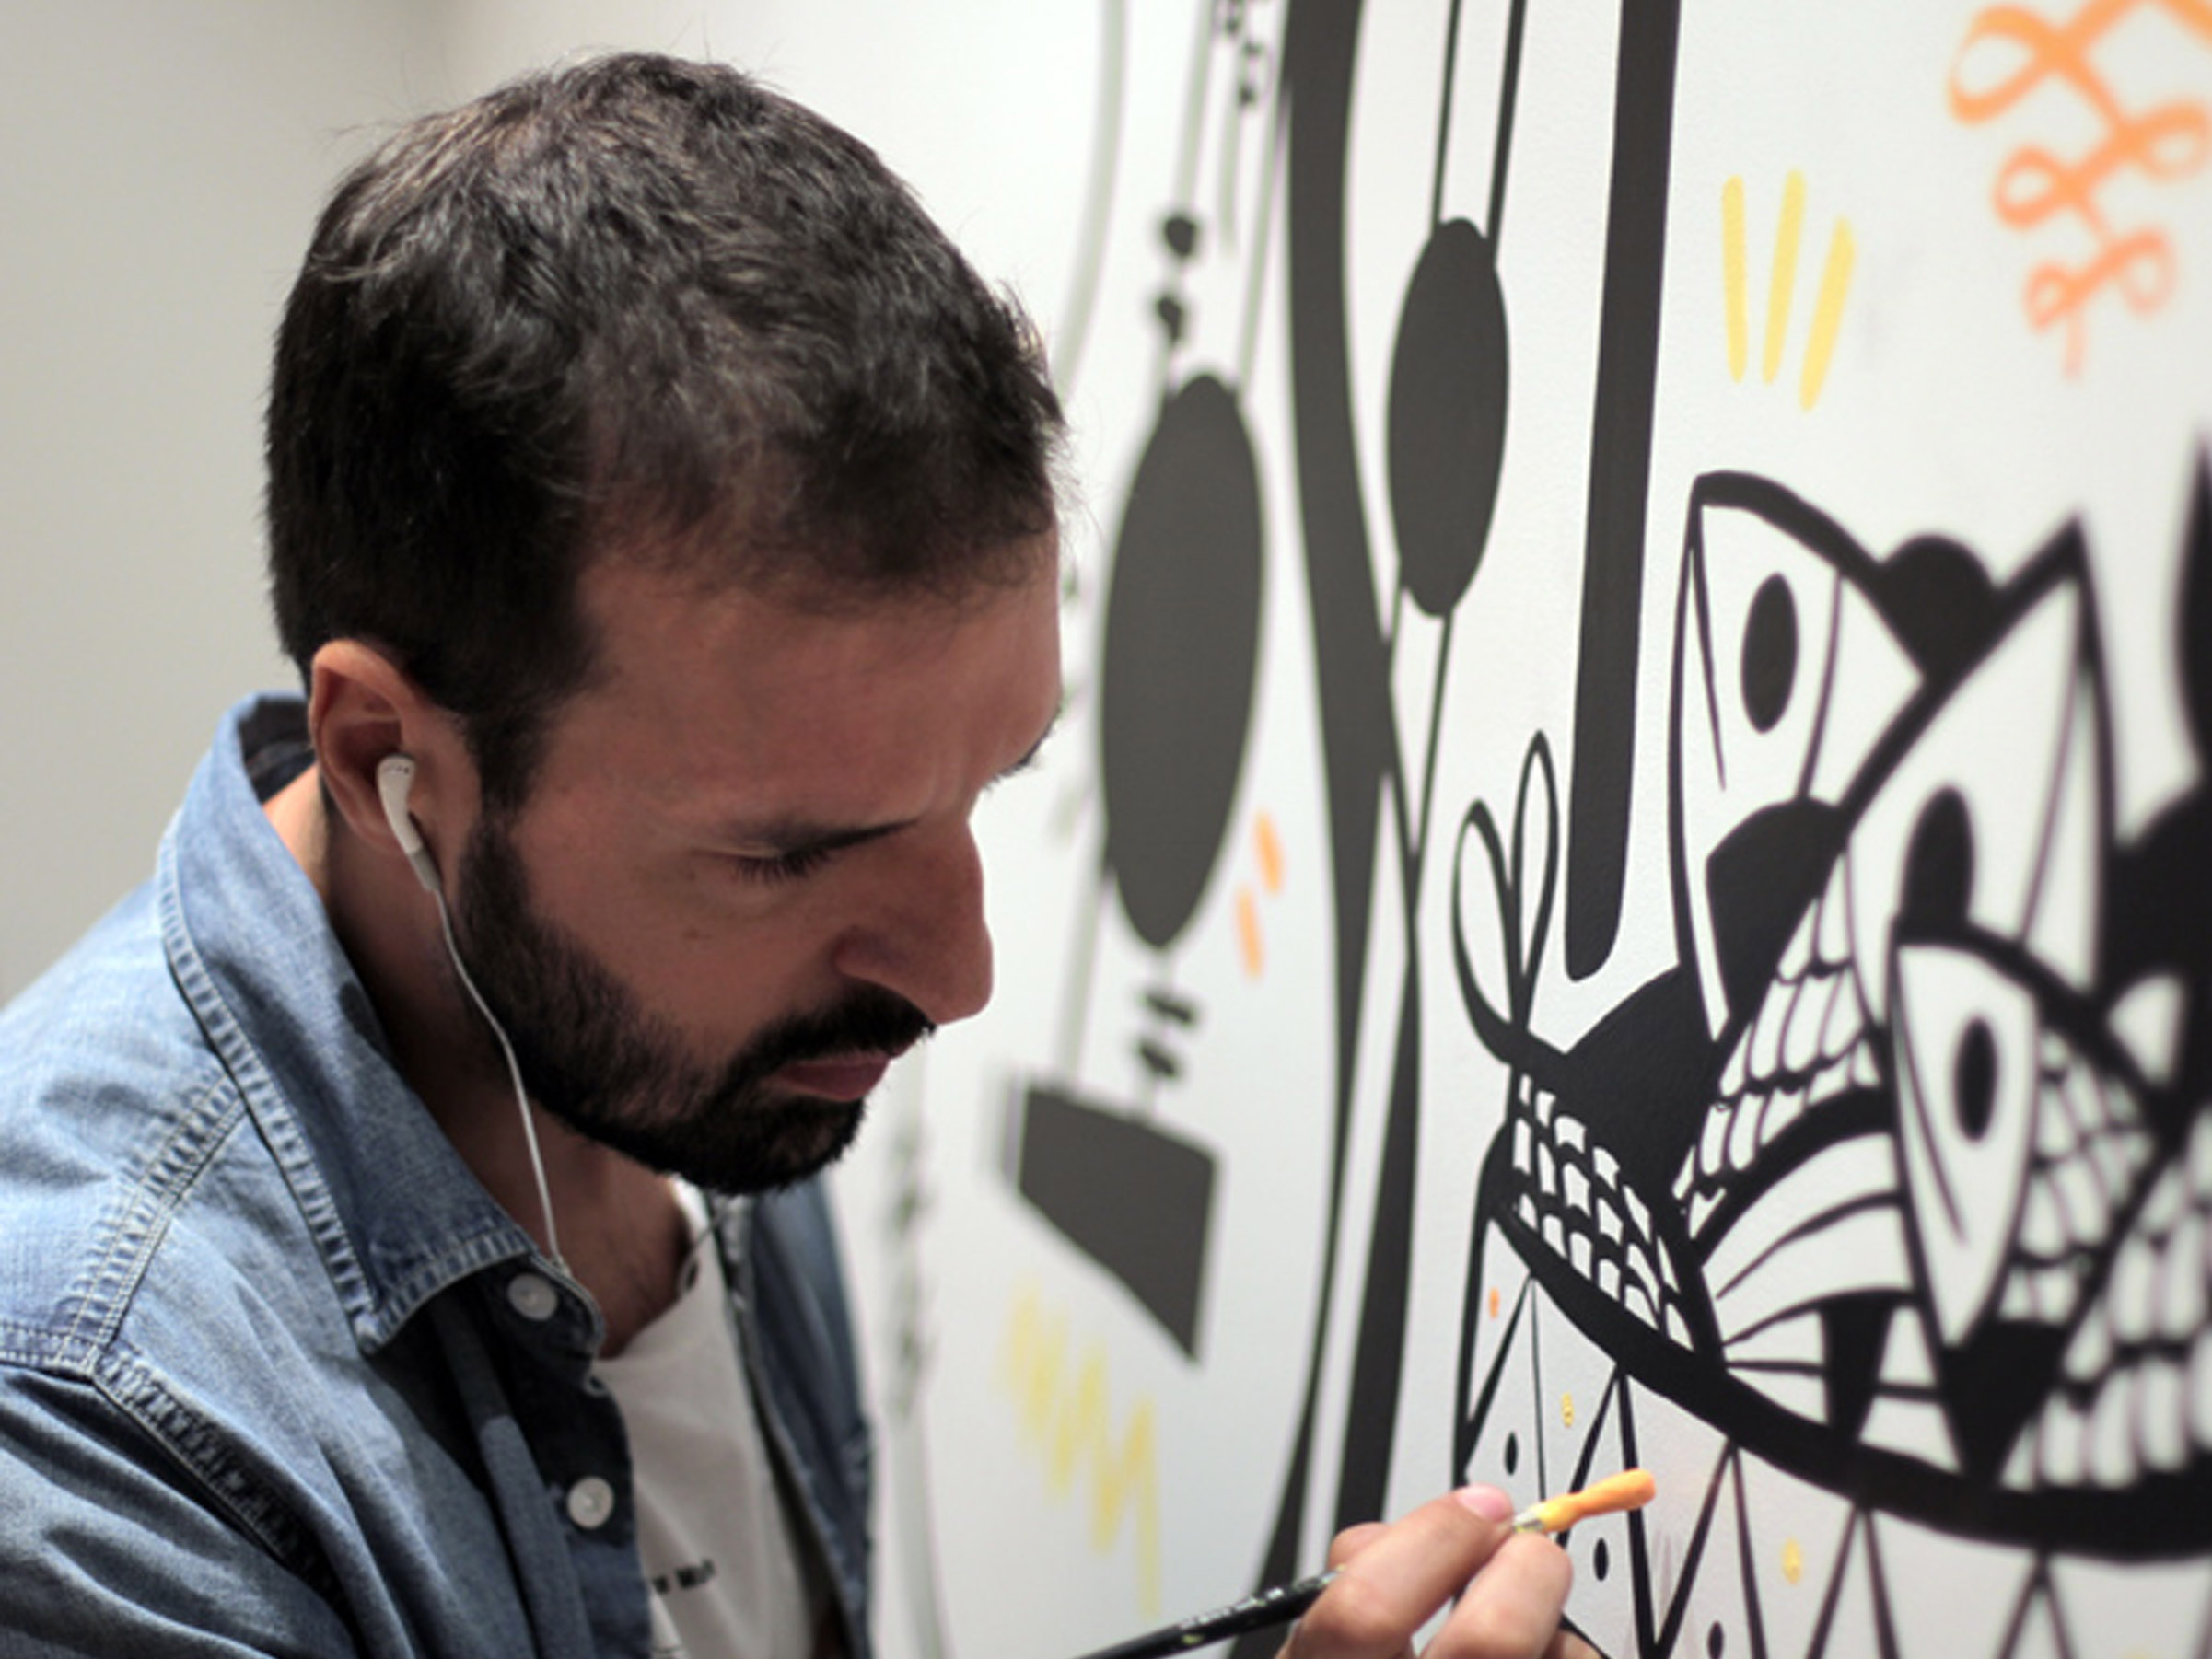 Featured Artists - Spanish street artist Ruben Sanchez hails from Madrid and was an artist-in-residence at Tashkeel in Dubai in 2013.Throughout his artwork you can find inspiration from Mediterranean life, graphic design, flamenco, graffiti, cubism, reclaimed materials and objects, skateboarding, 80's music, surrealism, and social situations.